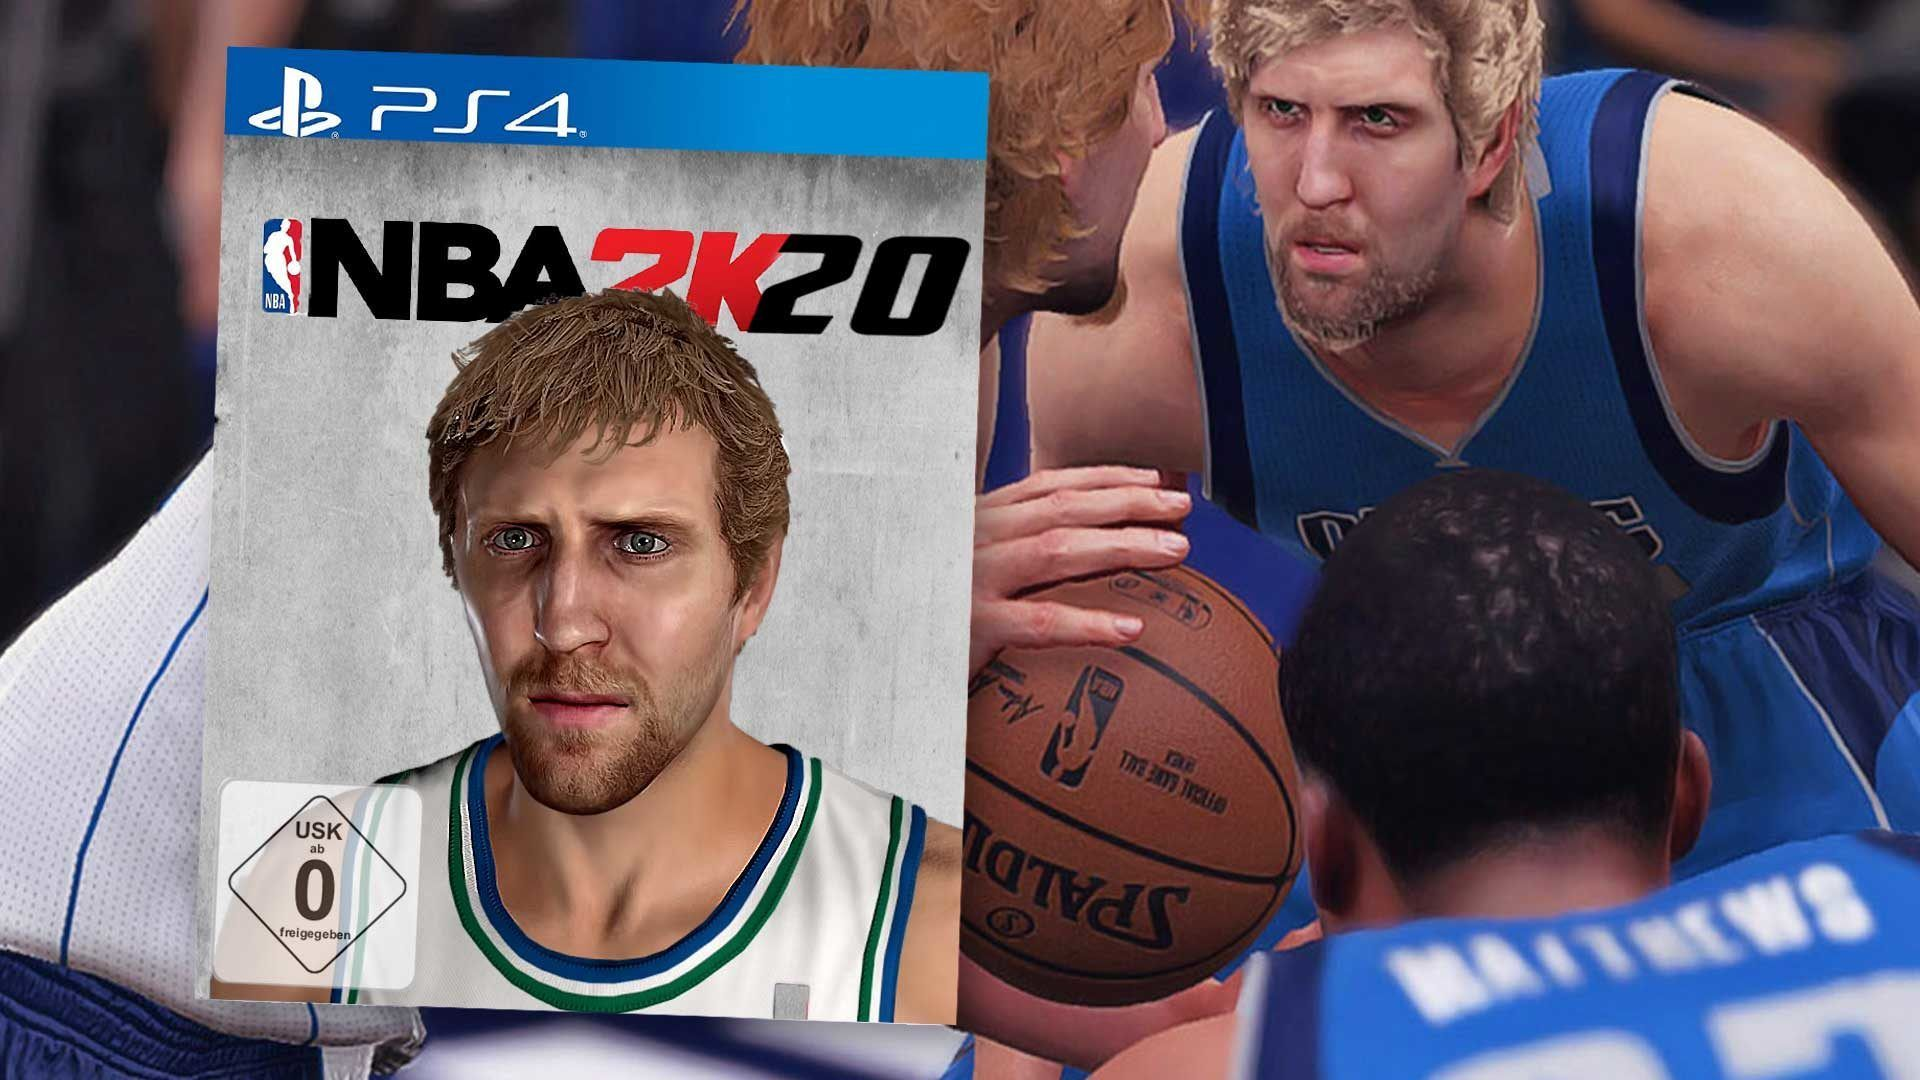 Nba 2k20 Ps3 The Latest Iteration Of The Nba 2k Series Is Now Available The Standard Edition Features The Newest Member Of The La Lake Nba 2k20 Nba Nba Game